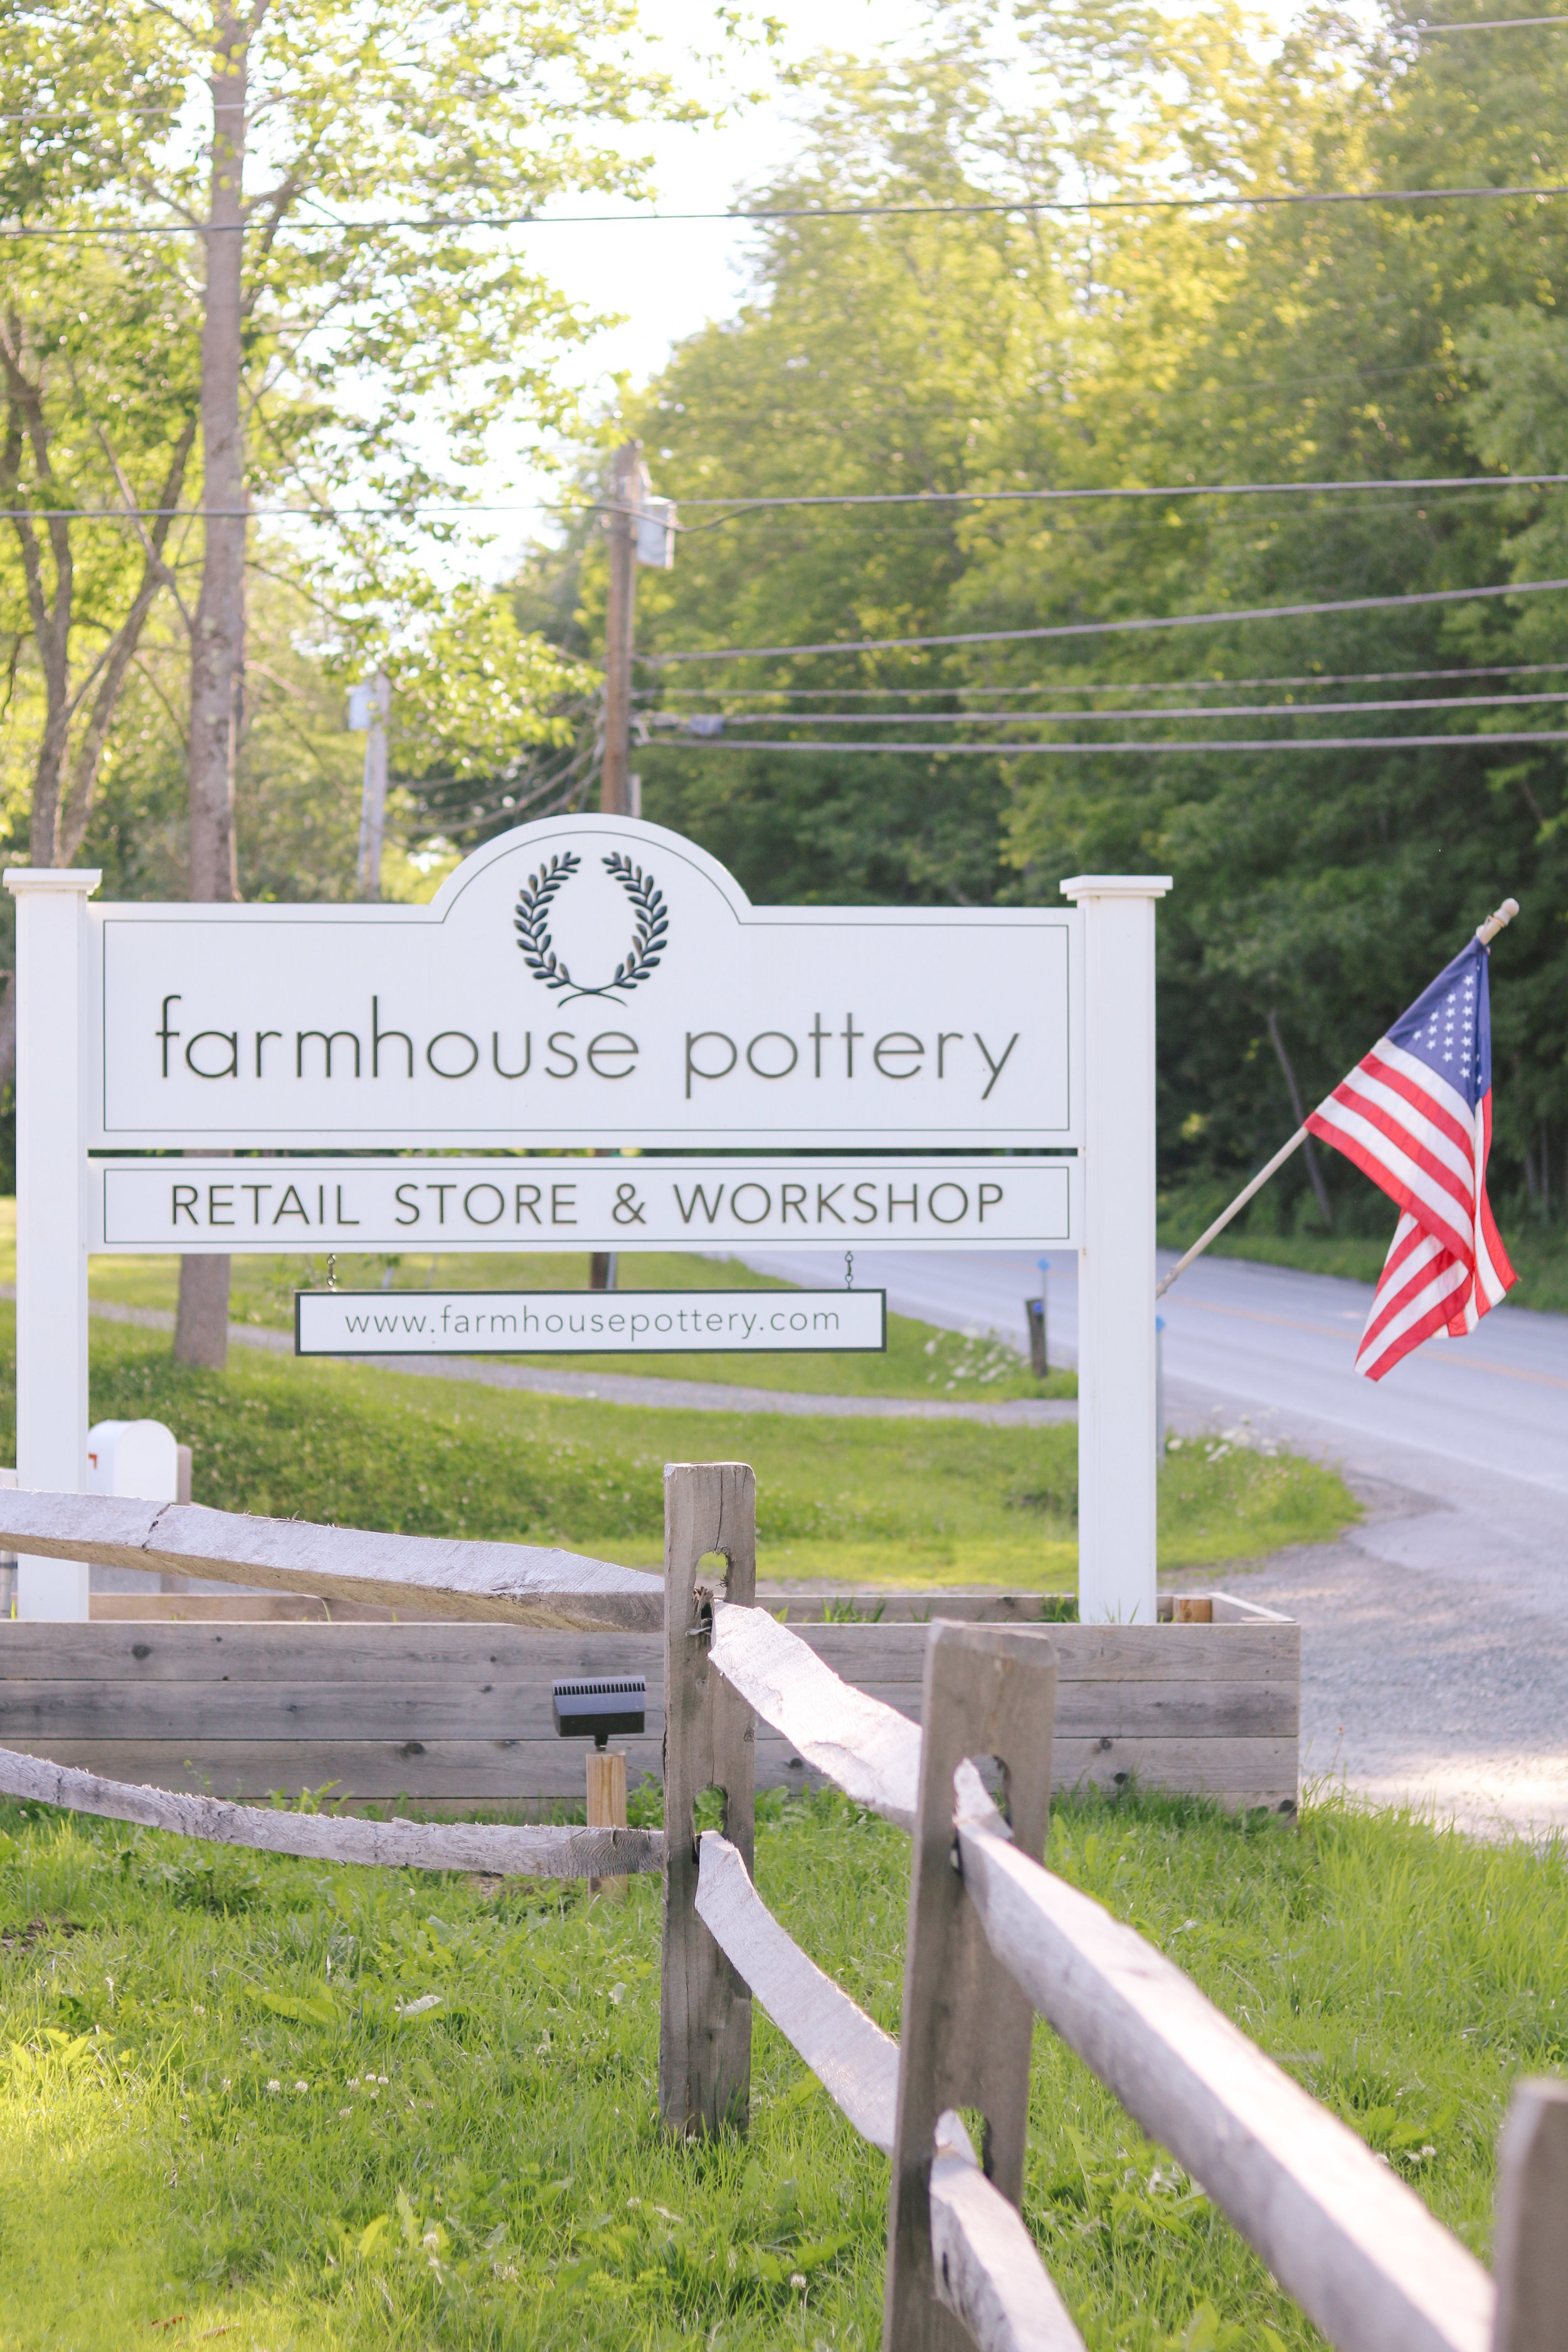 Farmhouse Pottery in Woodstock, VT - by Courtney Brown